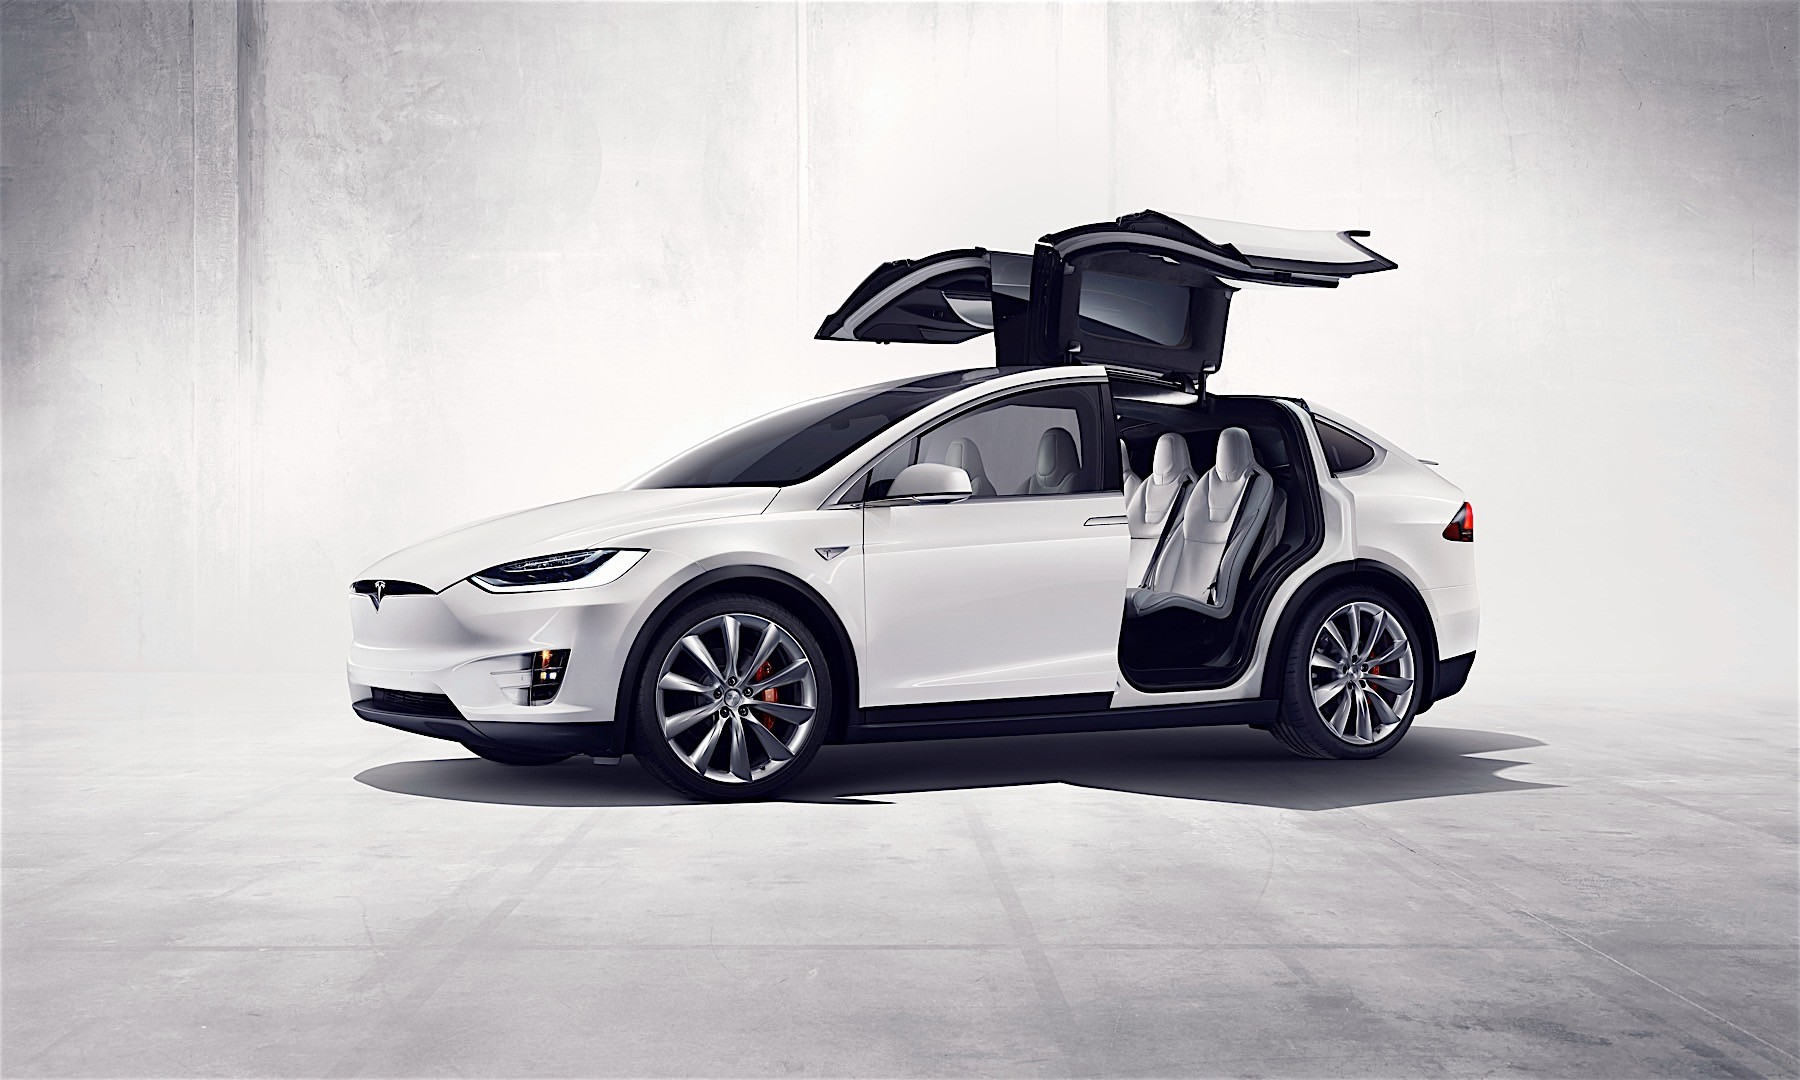 new-tesla-model-s-and-x-buyers-get-free-supercharging-old-customers-are-angry-136506_1